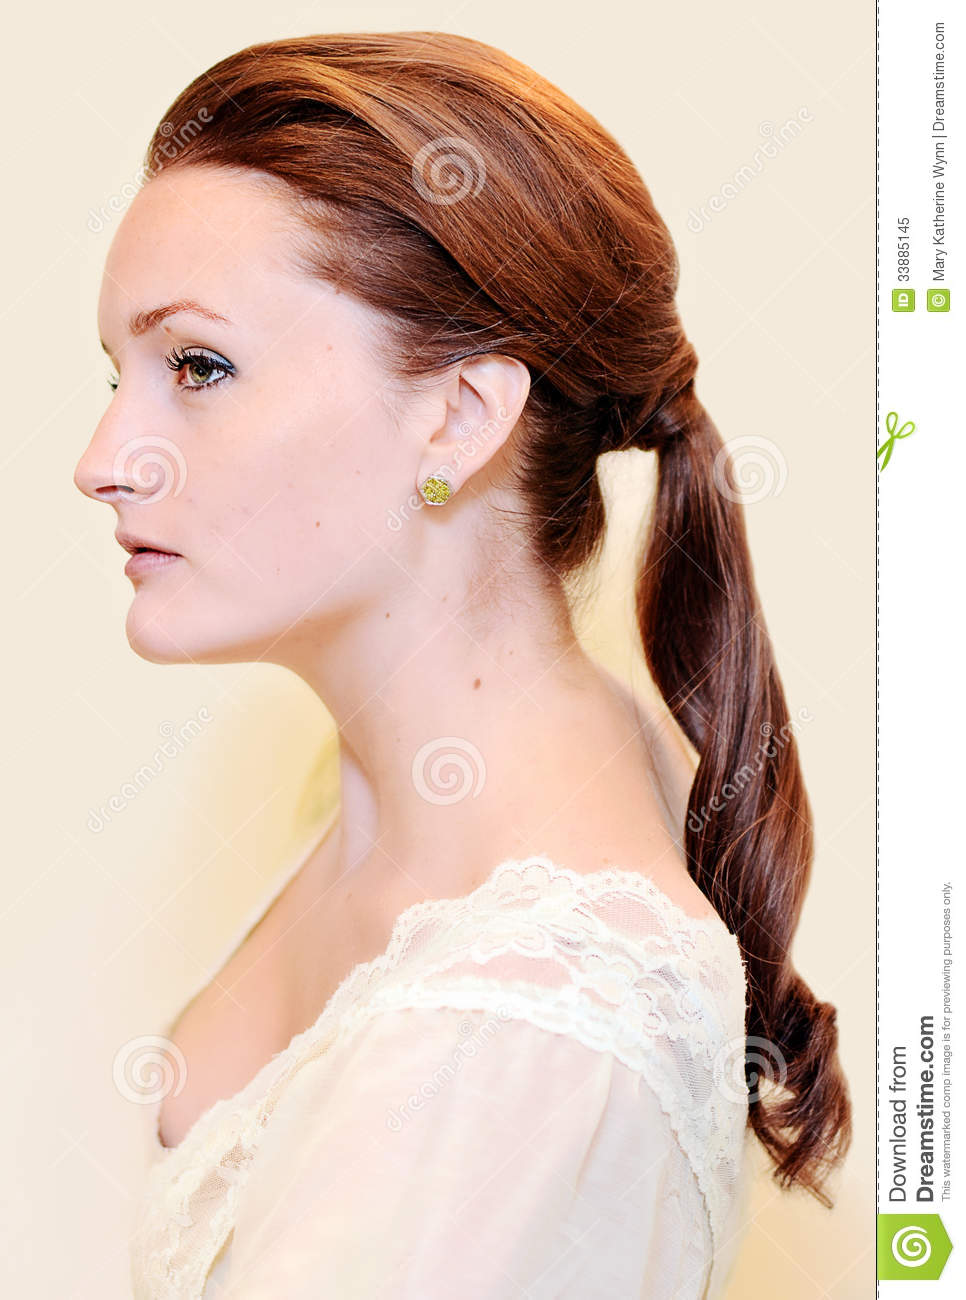 Woman with ponytail